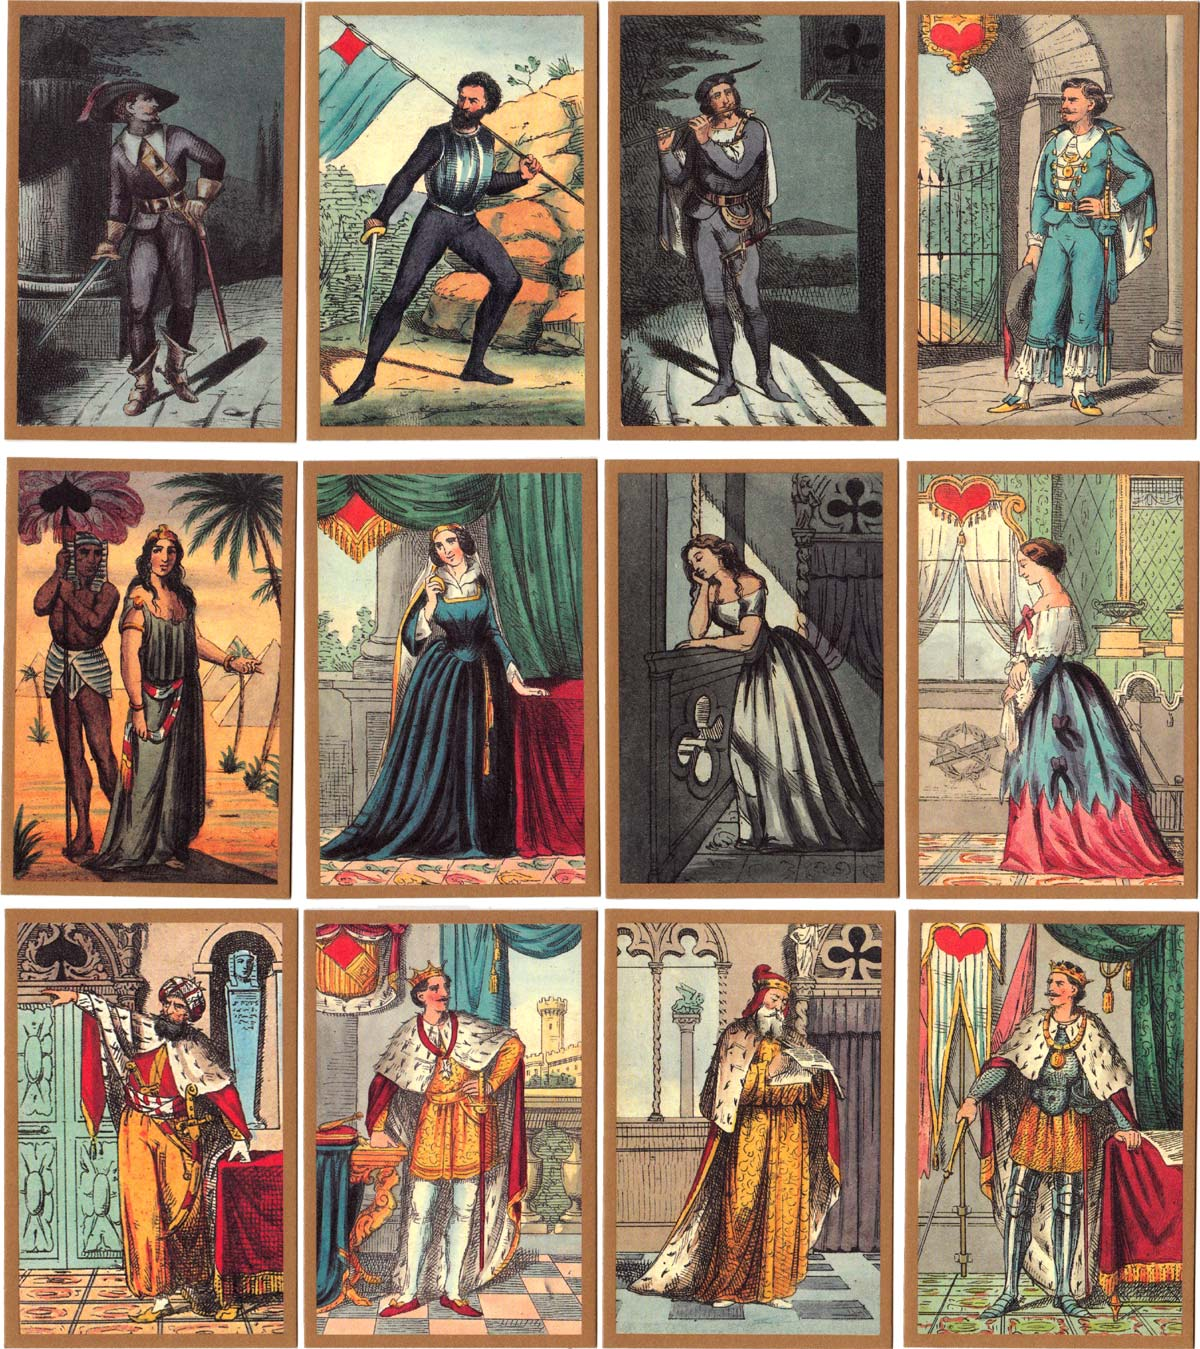 Transformation playing cards desgned by Adolfo Matarelli (1832-1877)